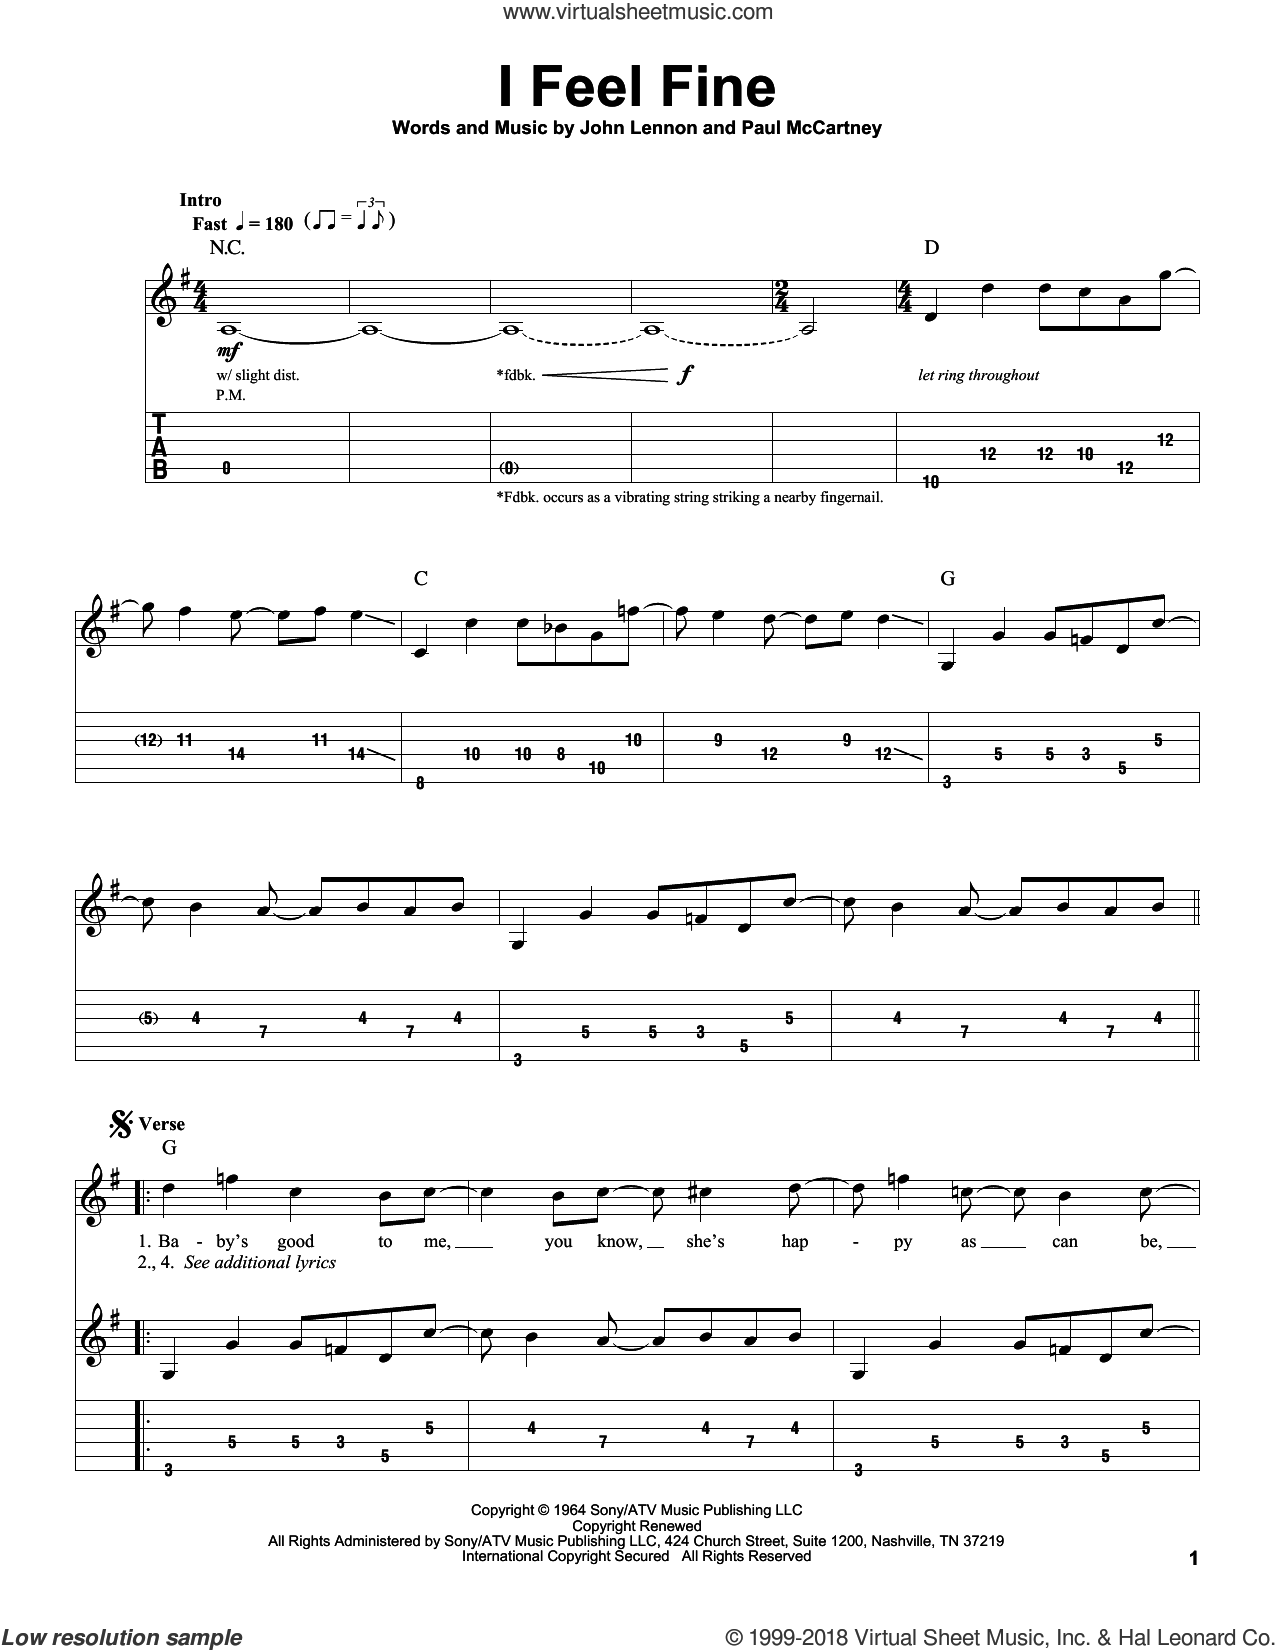 I Feel Fine sheet music for guitar (tablature, play-along) by The Beatles, John Lennon and Paul McCartney, intermediate skill level